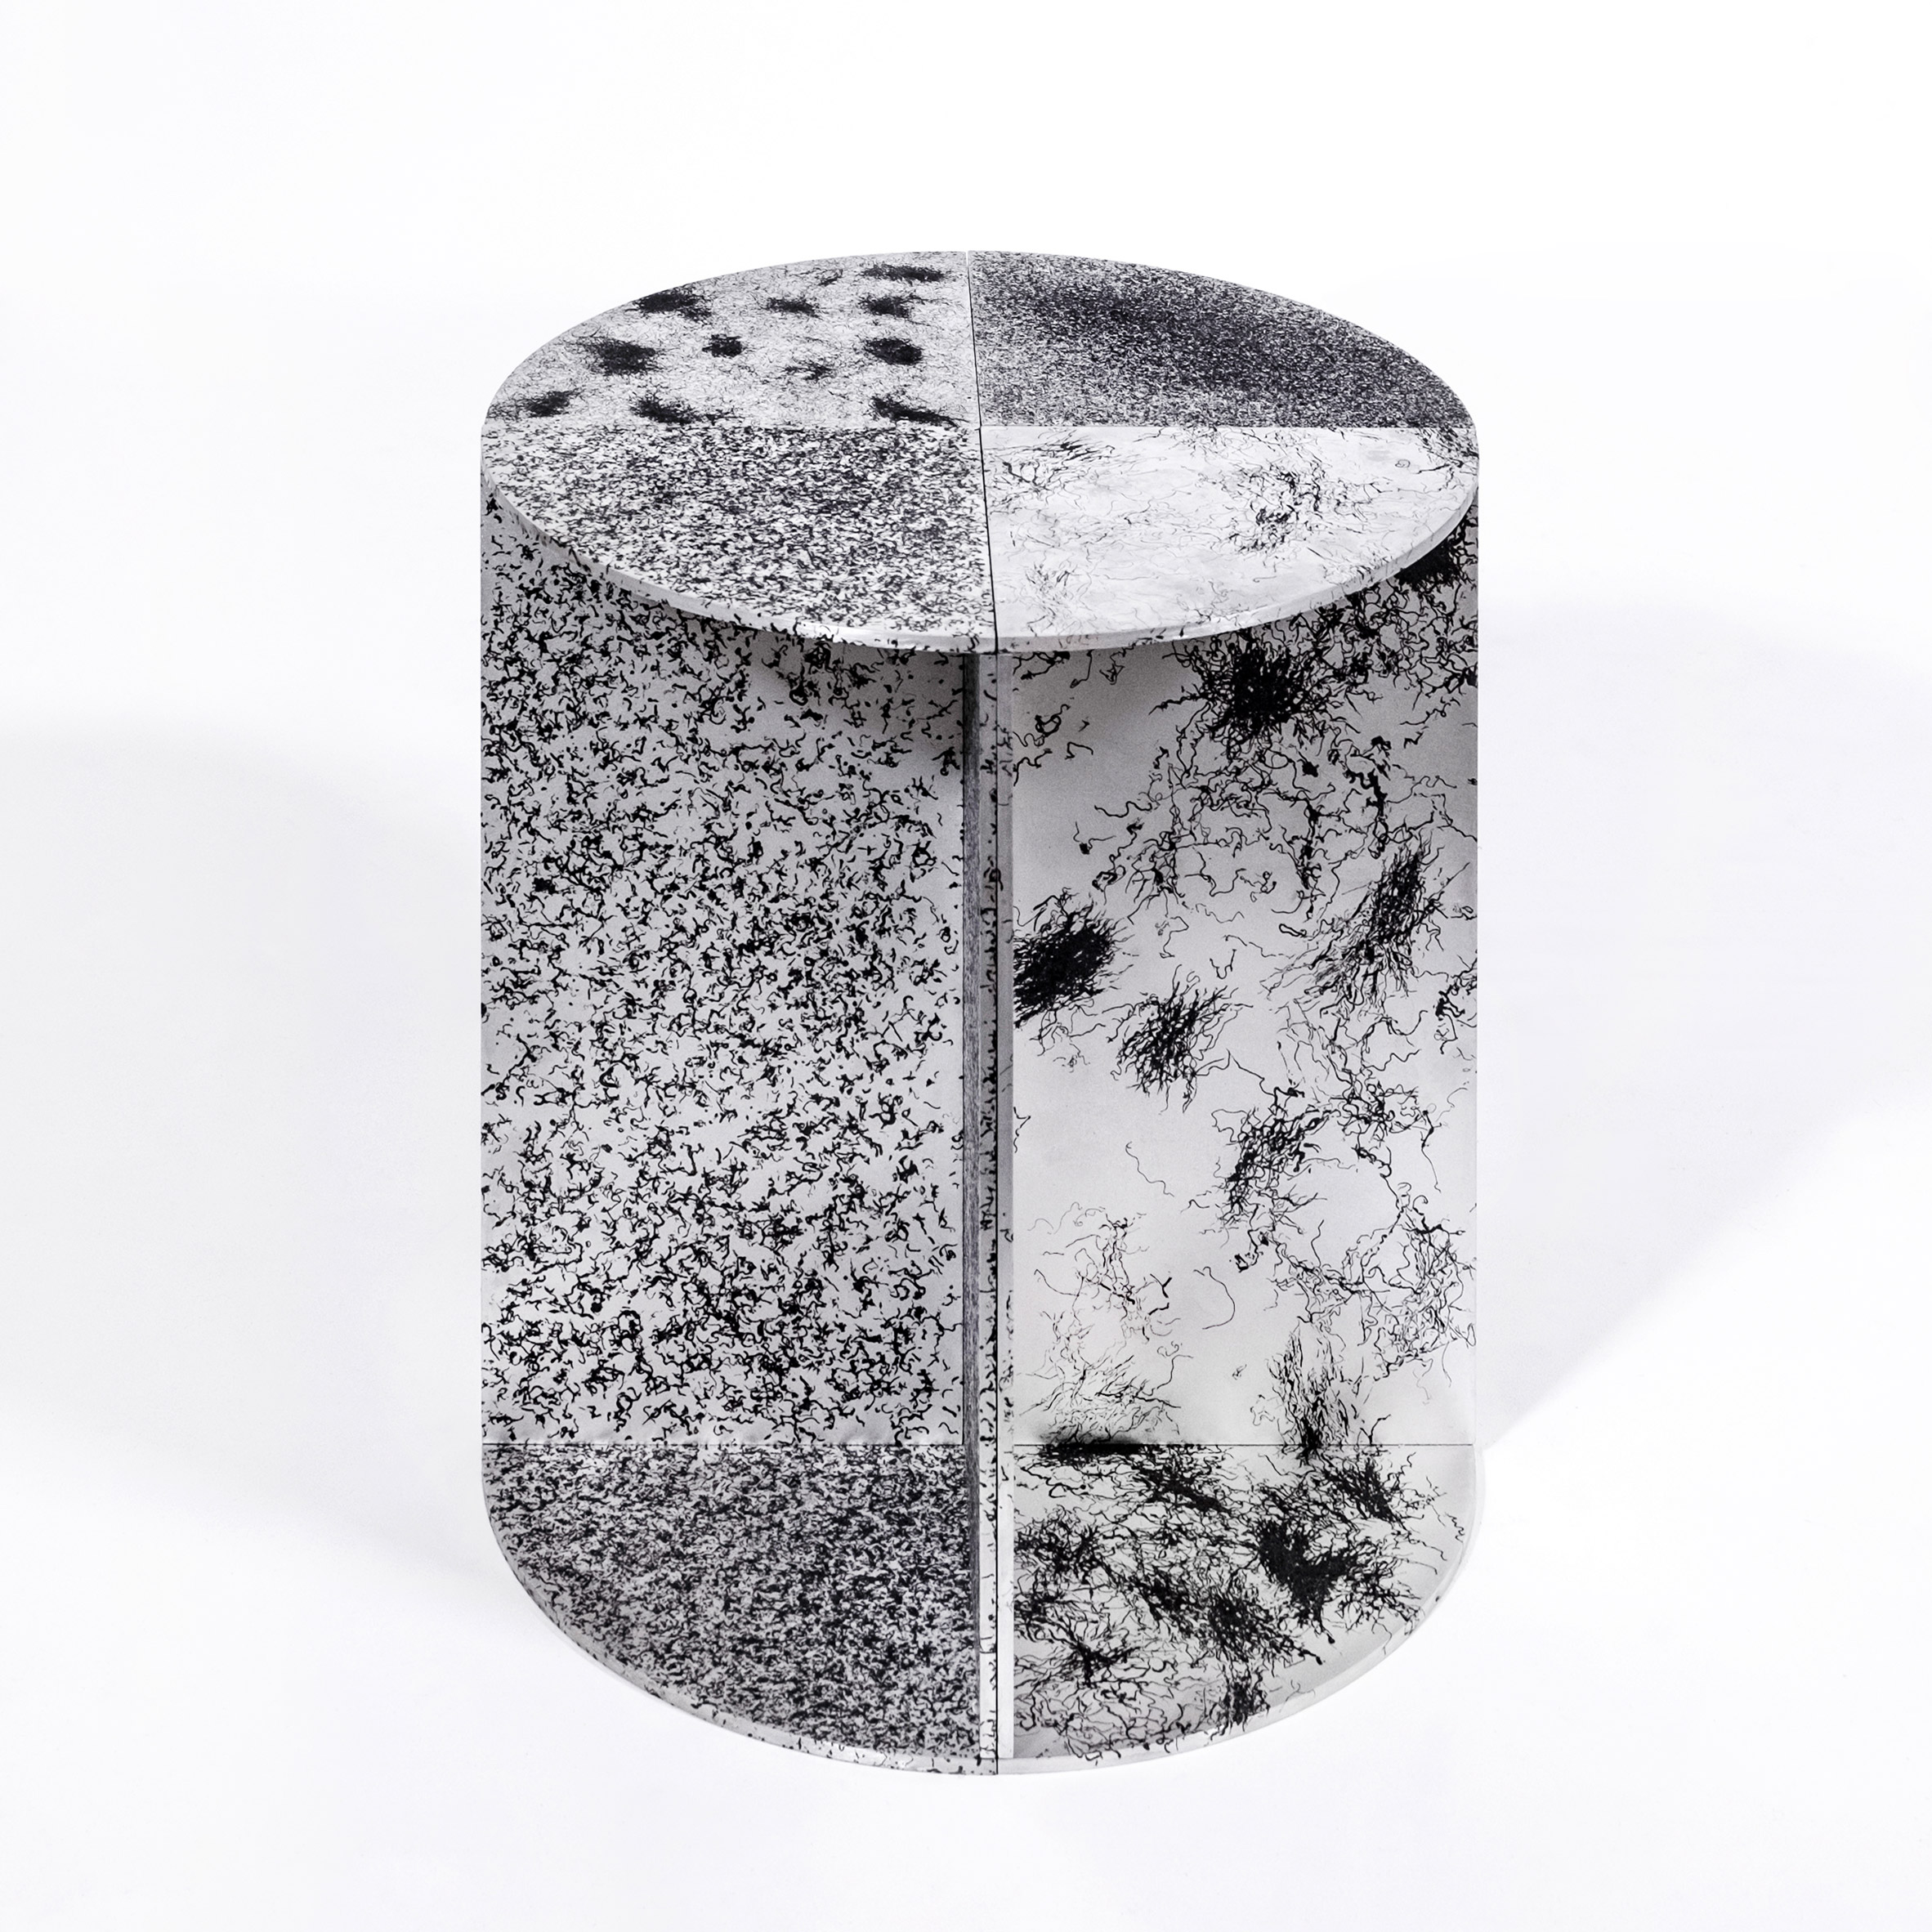 Burnt hair creates etch-like patterns on stools by Fabio Hendry and Martijn Rigters